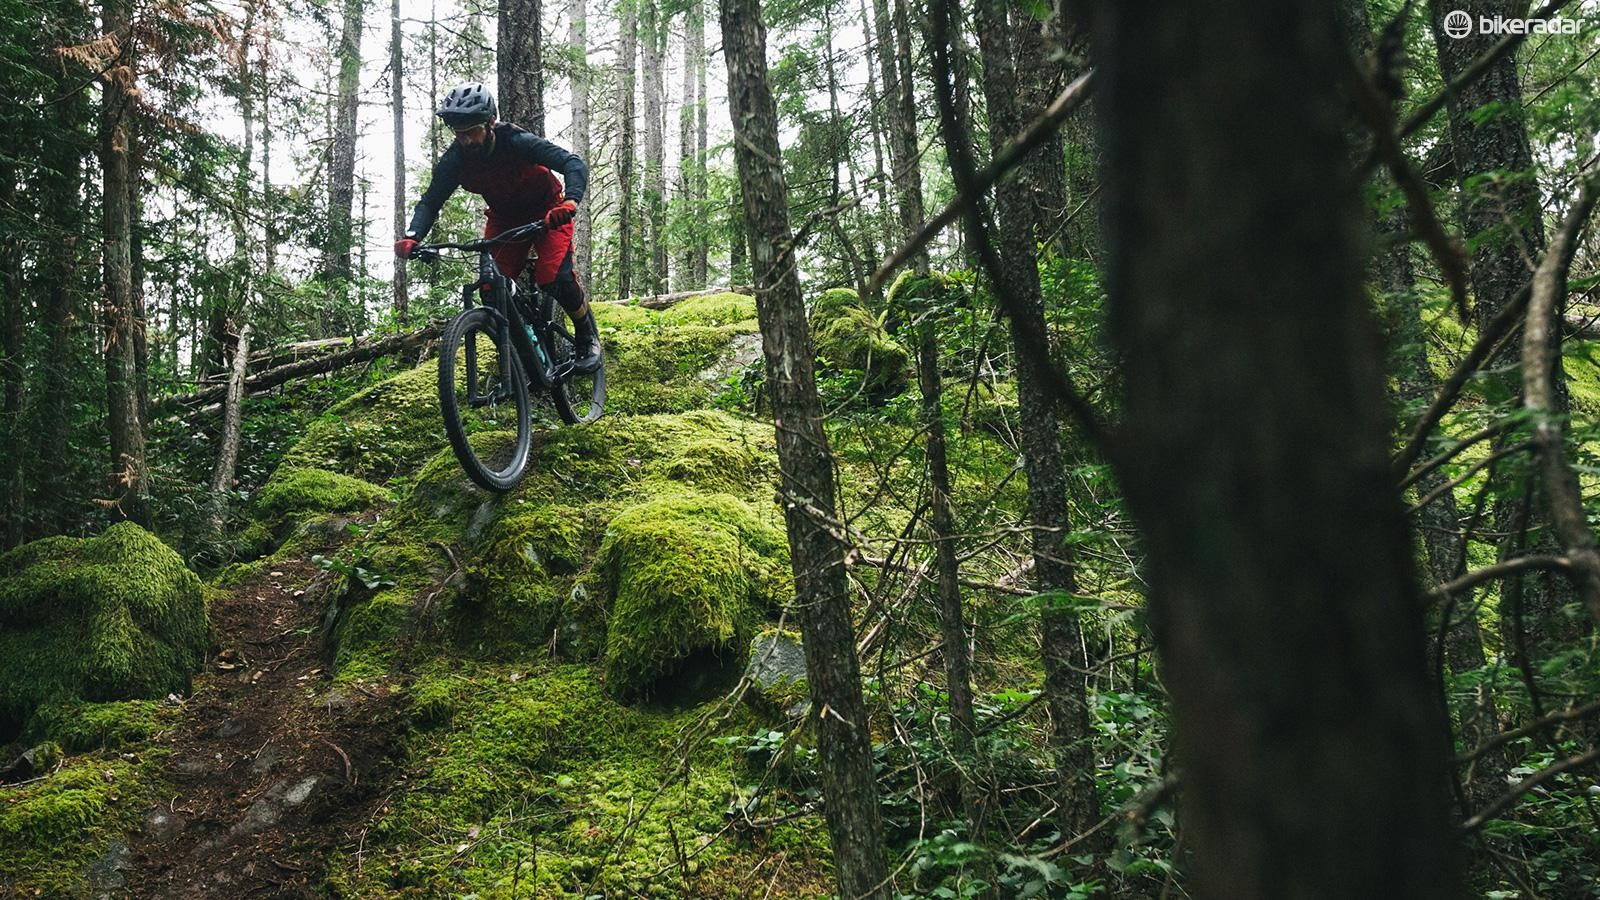 The more natural trails on offer were a great test of the new bike where it really seemed to shine on the climbs, thanks in part to the revised geometry